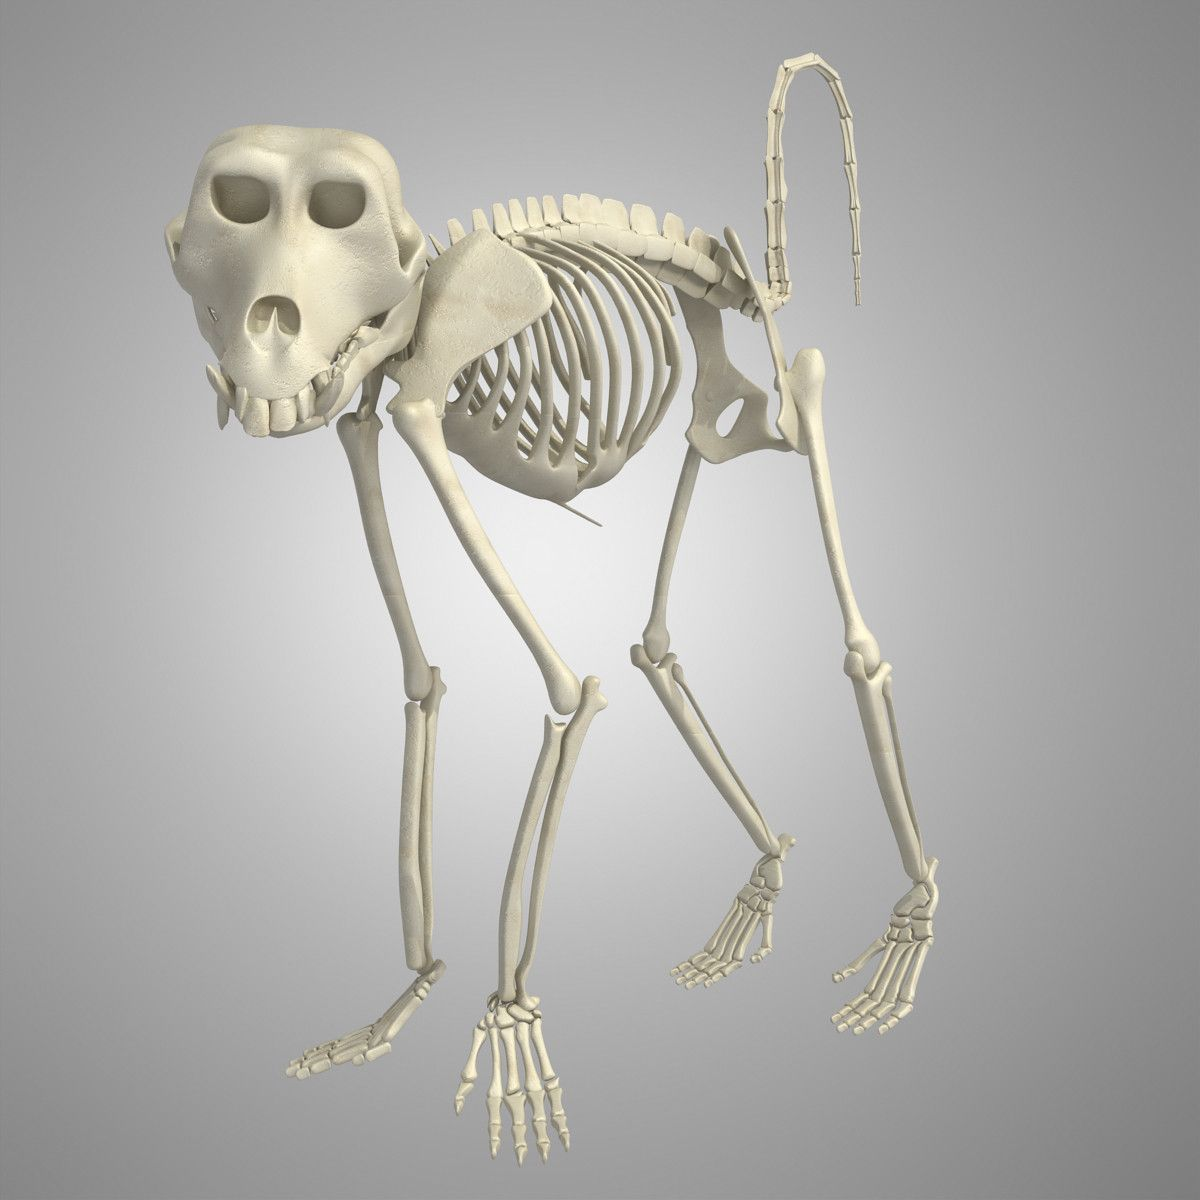 3d Skeleton Monkey Model Pinterest Skeletons Monkey